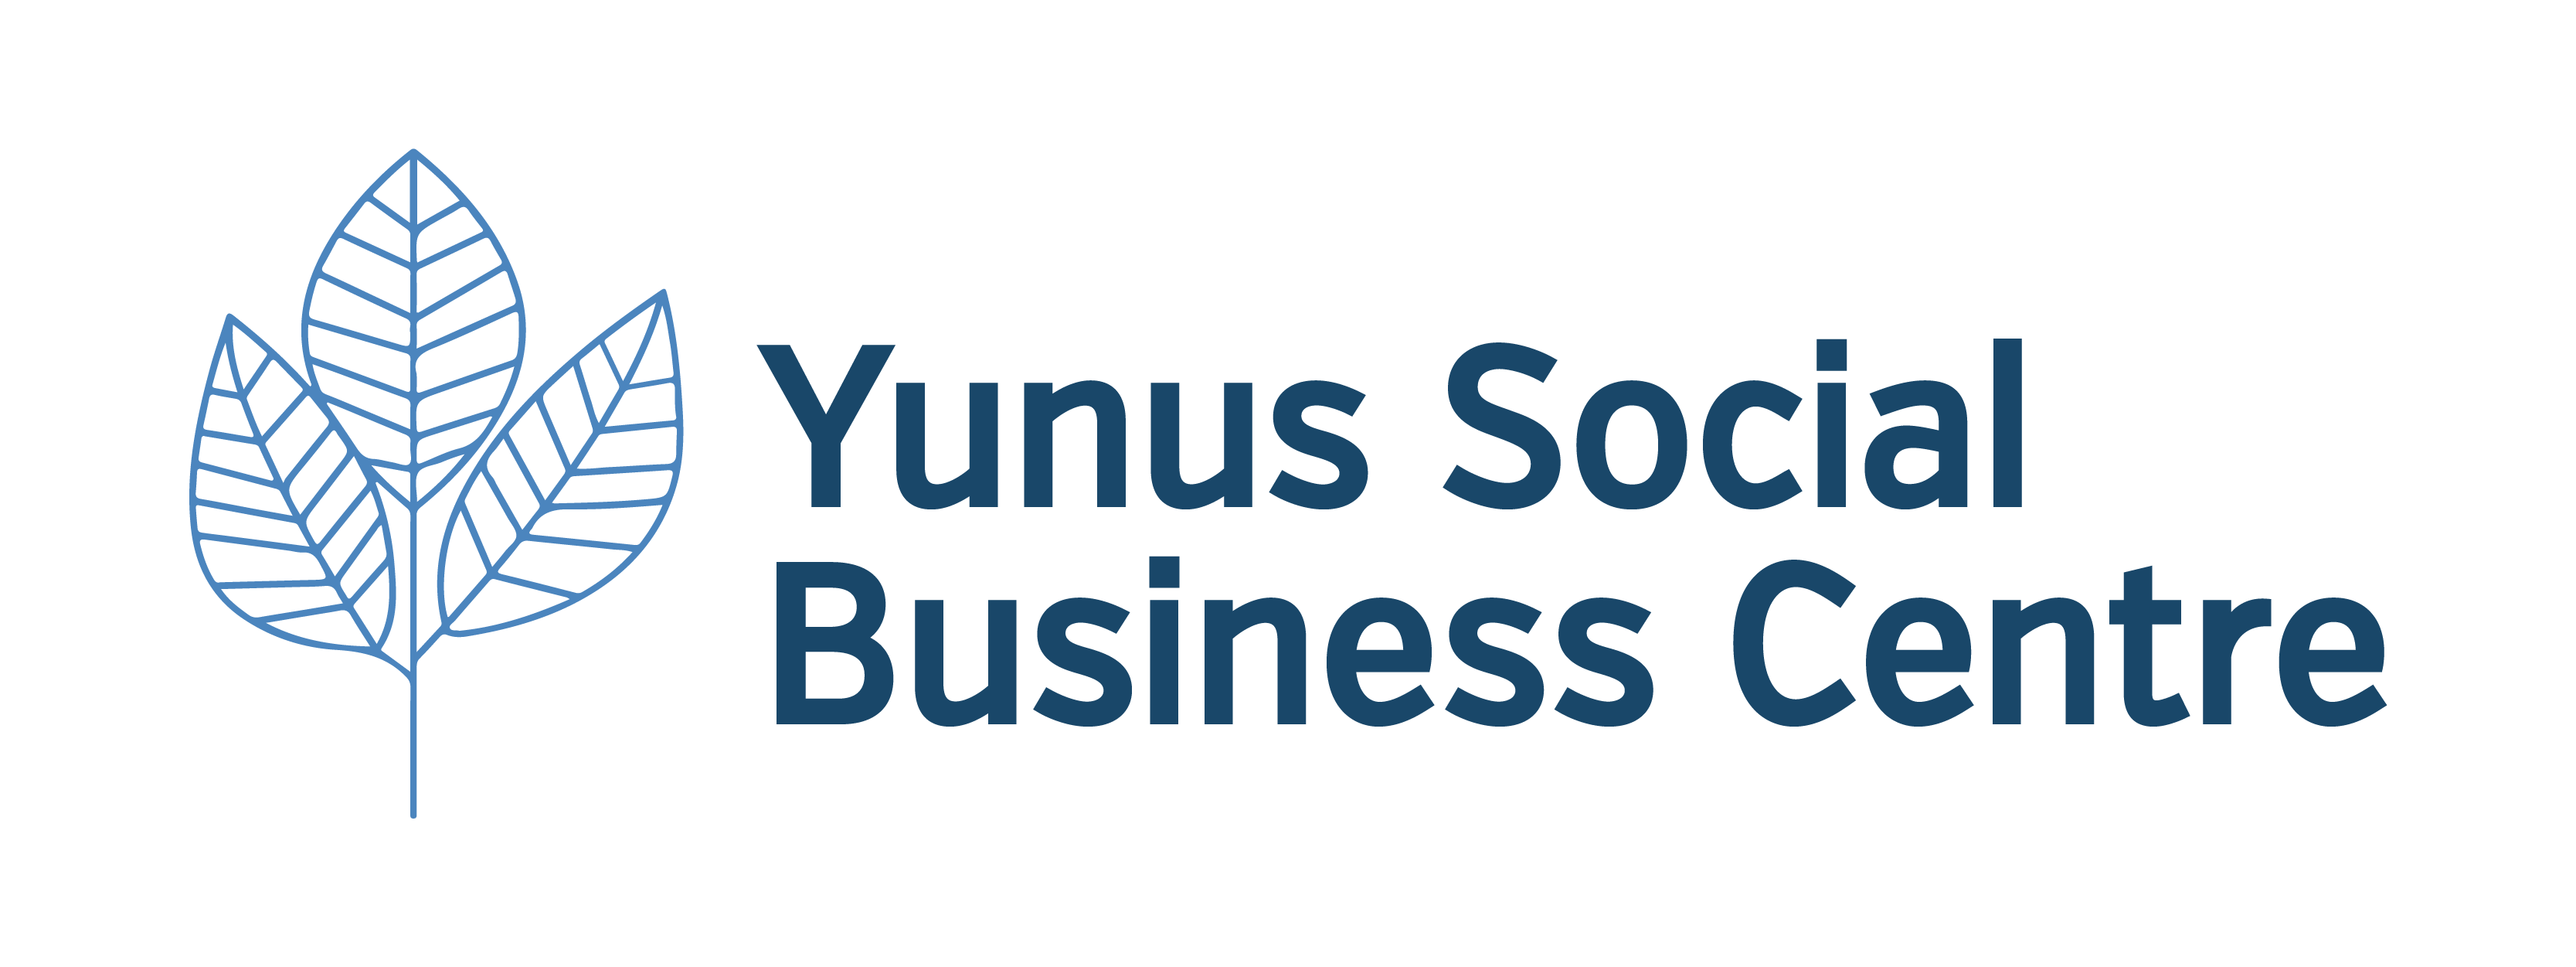 Yunus Social Business Centre